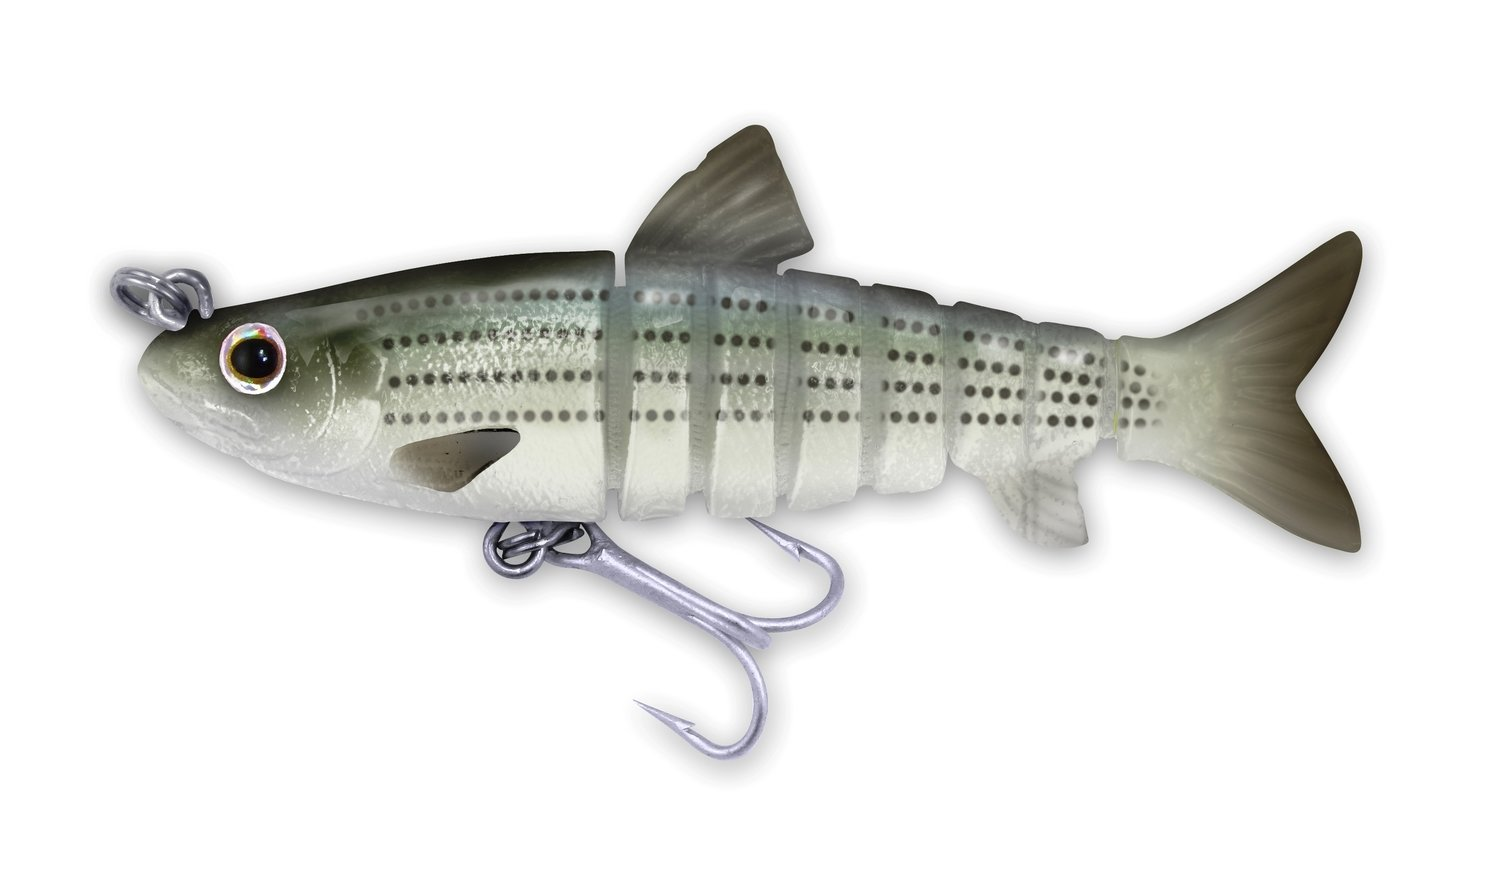 113 Vudu Mullet Striped Mullet 3.5 inch 1/4 oz (1/pk)